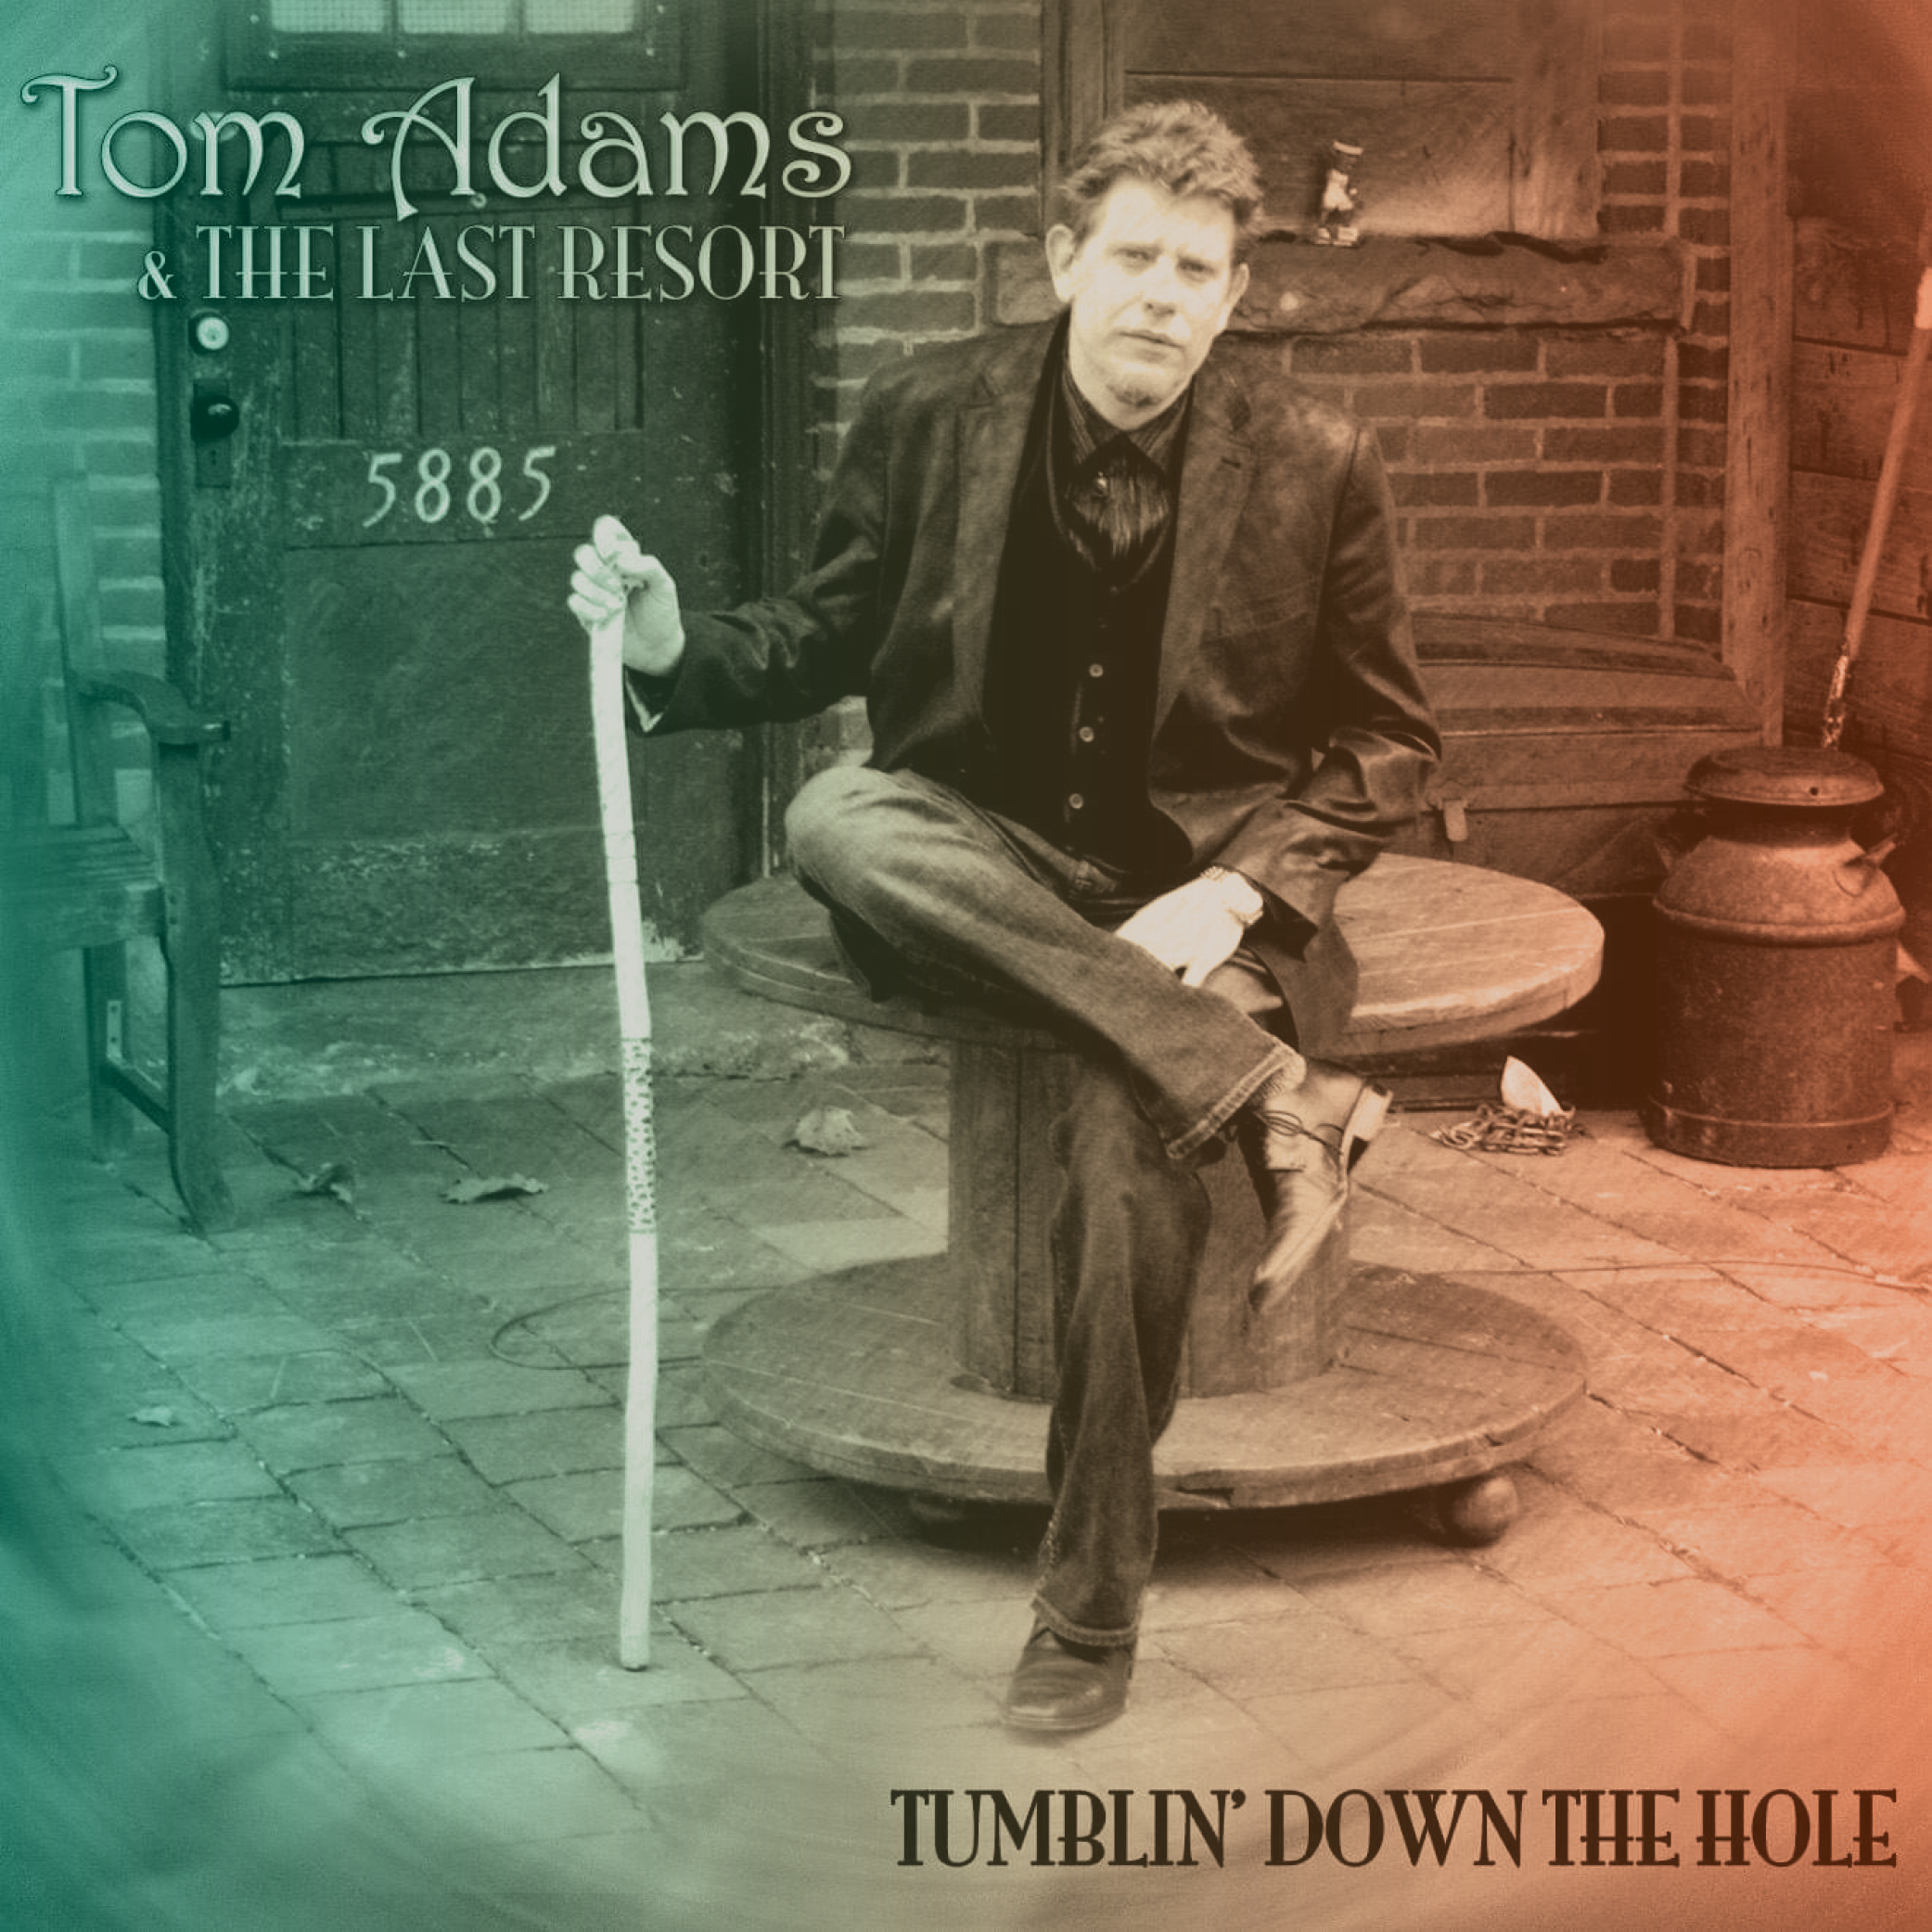 Tom Adams and the Last Resort  |  Saturday, September 14  |  7:30-8:30 p.m.  |  Tav Co